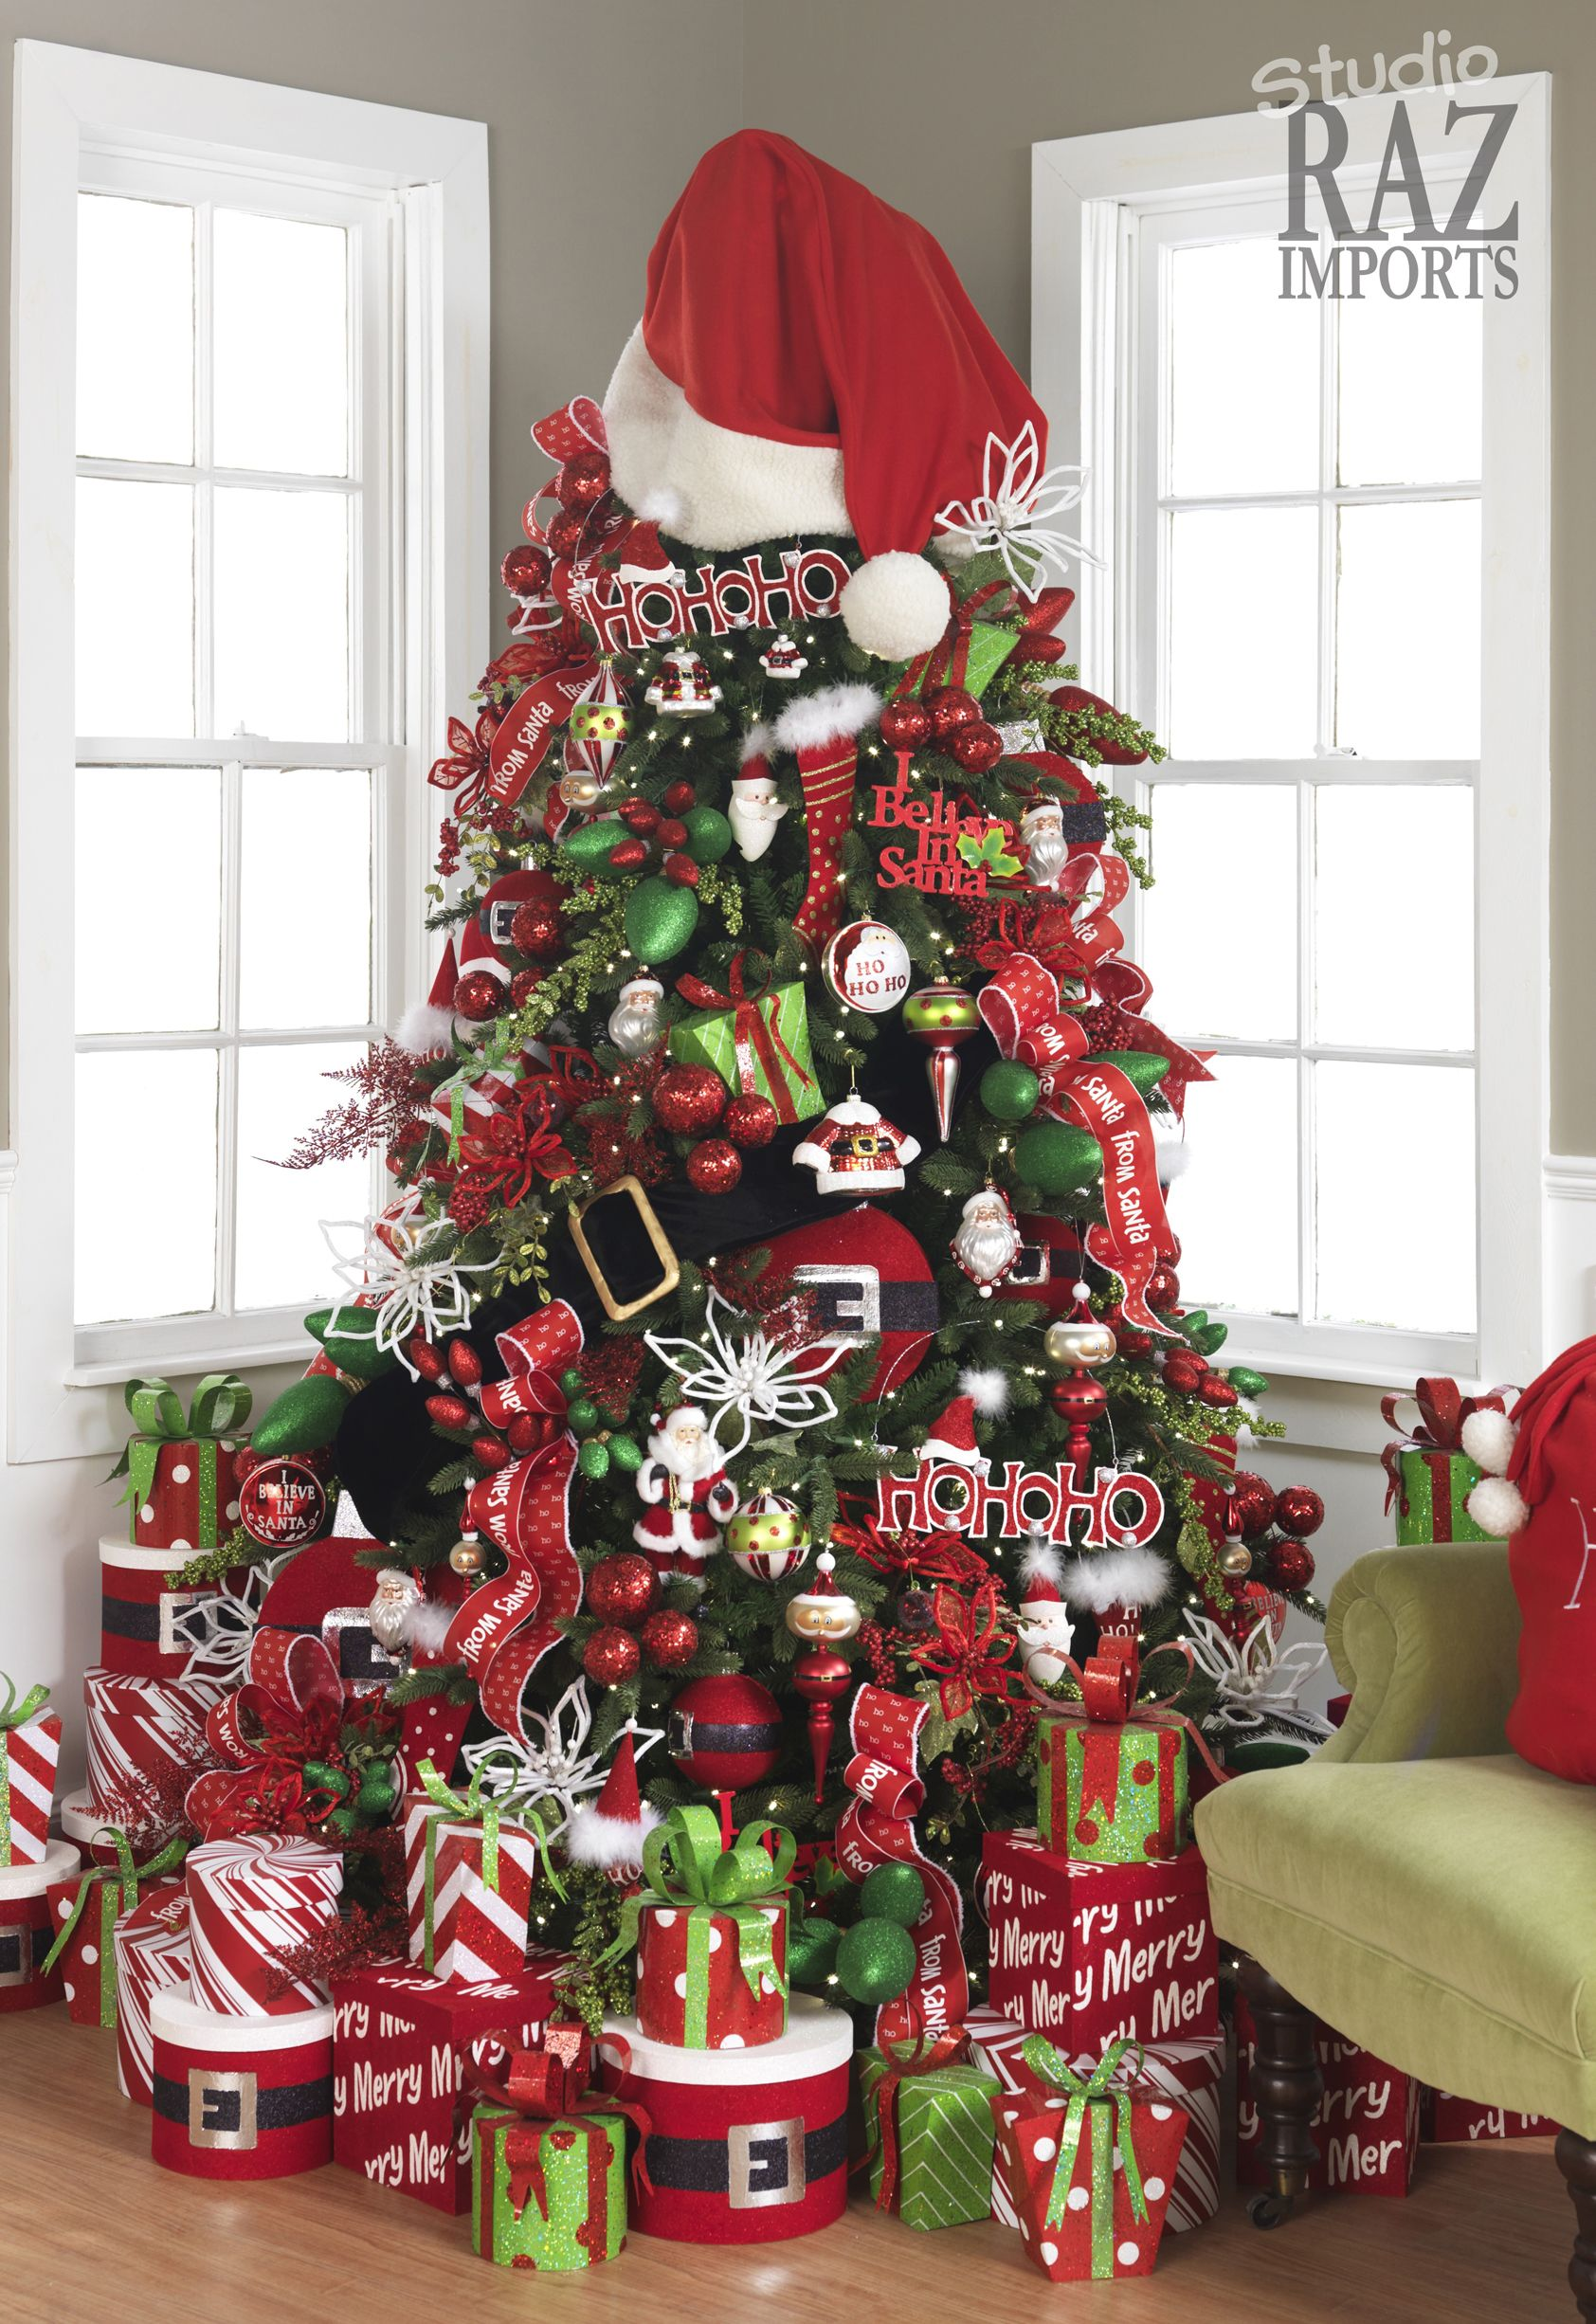 Such A Fun Christmas Tree Creative Christmas Trees Christmas Tree Themes Christmas Tree Decorations